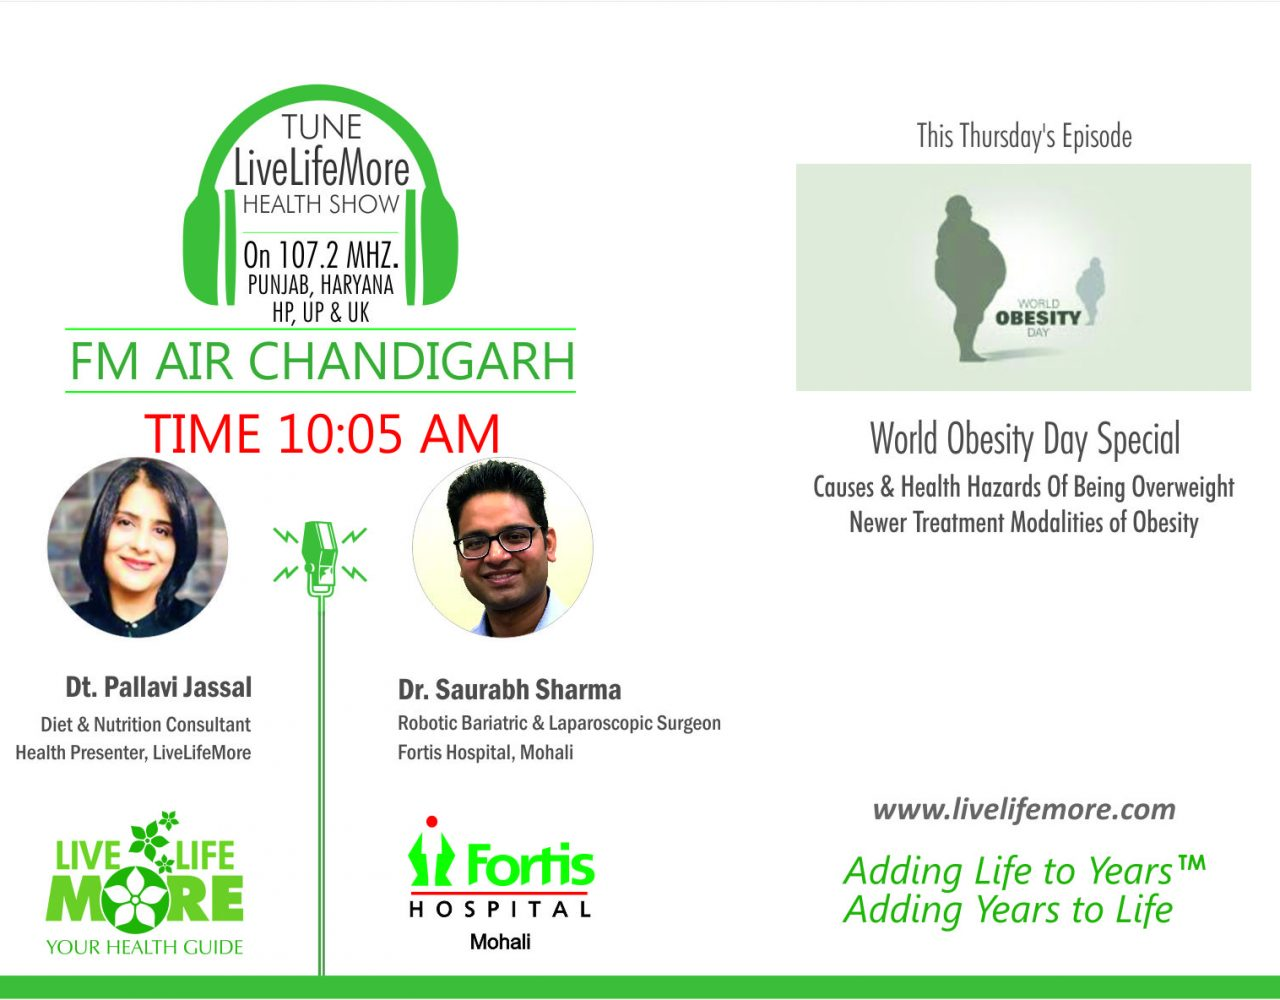 LiveLifeMore Health Show on Obesity by Dietitian Pallavi Jassal with Dr Saurabh Sharma